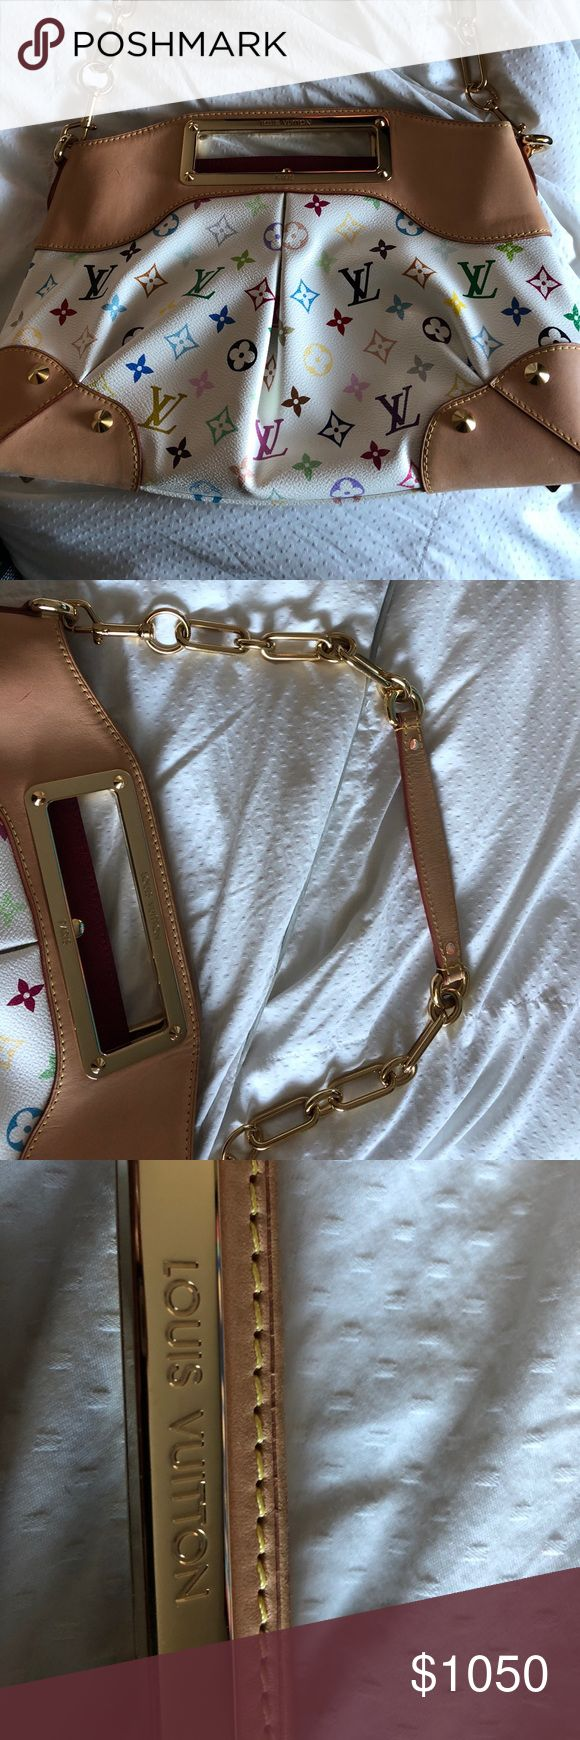 Louis Vuitton Handbag/Clutch This bag is from a few years ago. It's the white multi colour from LV. Had raspberry interior and it looks brand new. I used it twice! I guarantee all my items authentic  purchased right from LV. If you have questions contact me. 9 out of ten if I habe to rate it. Comes with dustbag! Louis Vuitton Bags Shoulder Bags